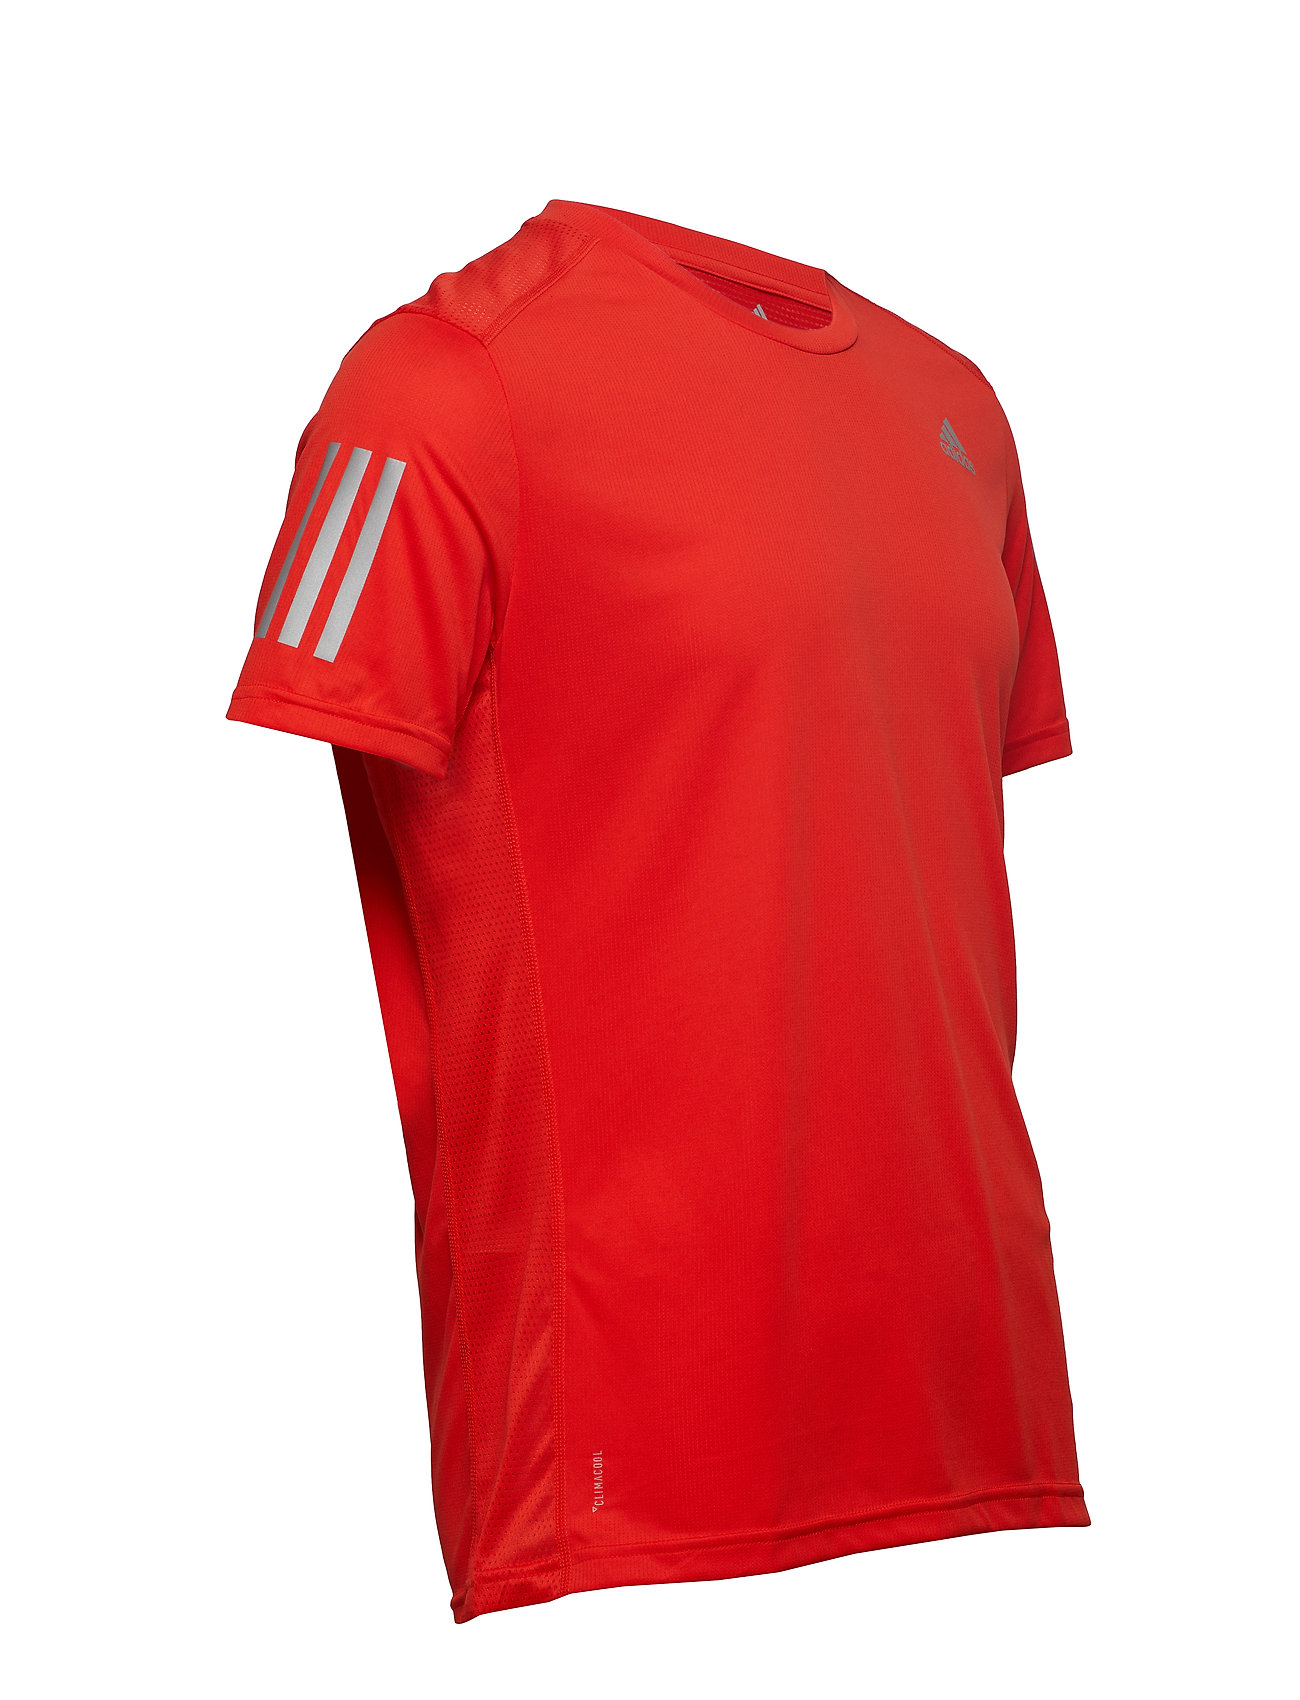 Own The refsilAdidas Performance Run Teeactred 8mOyNn0Pvw